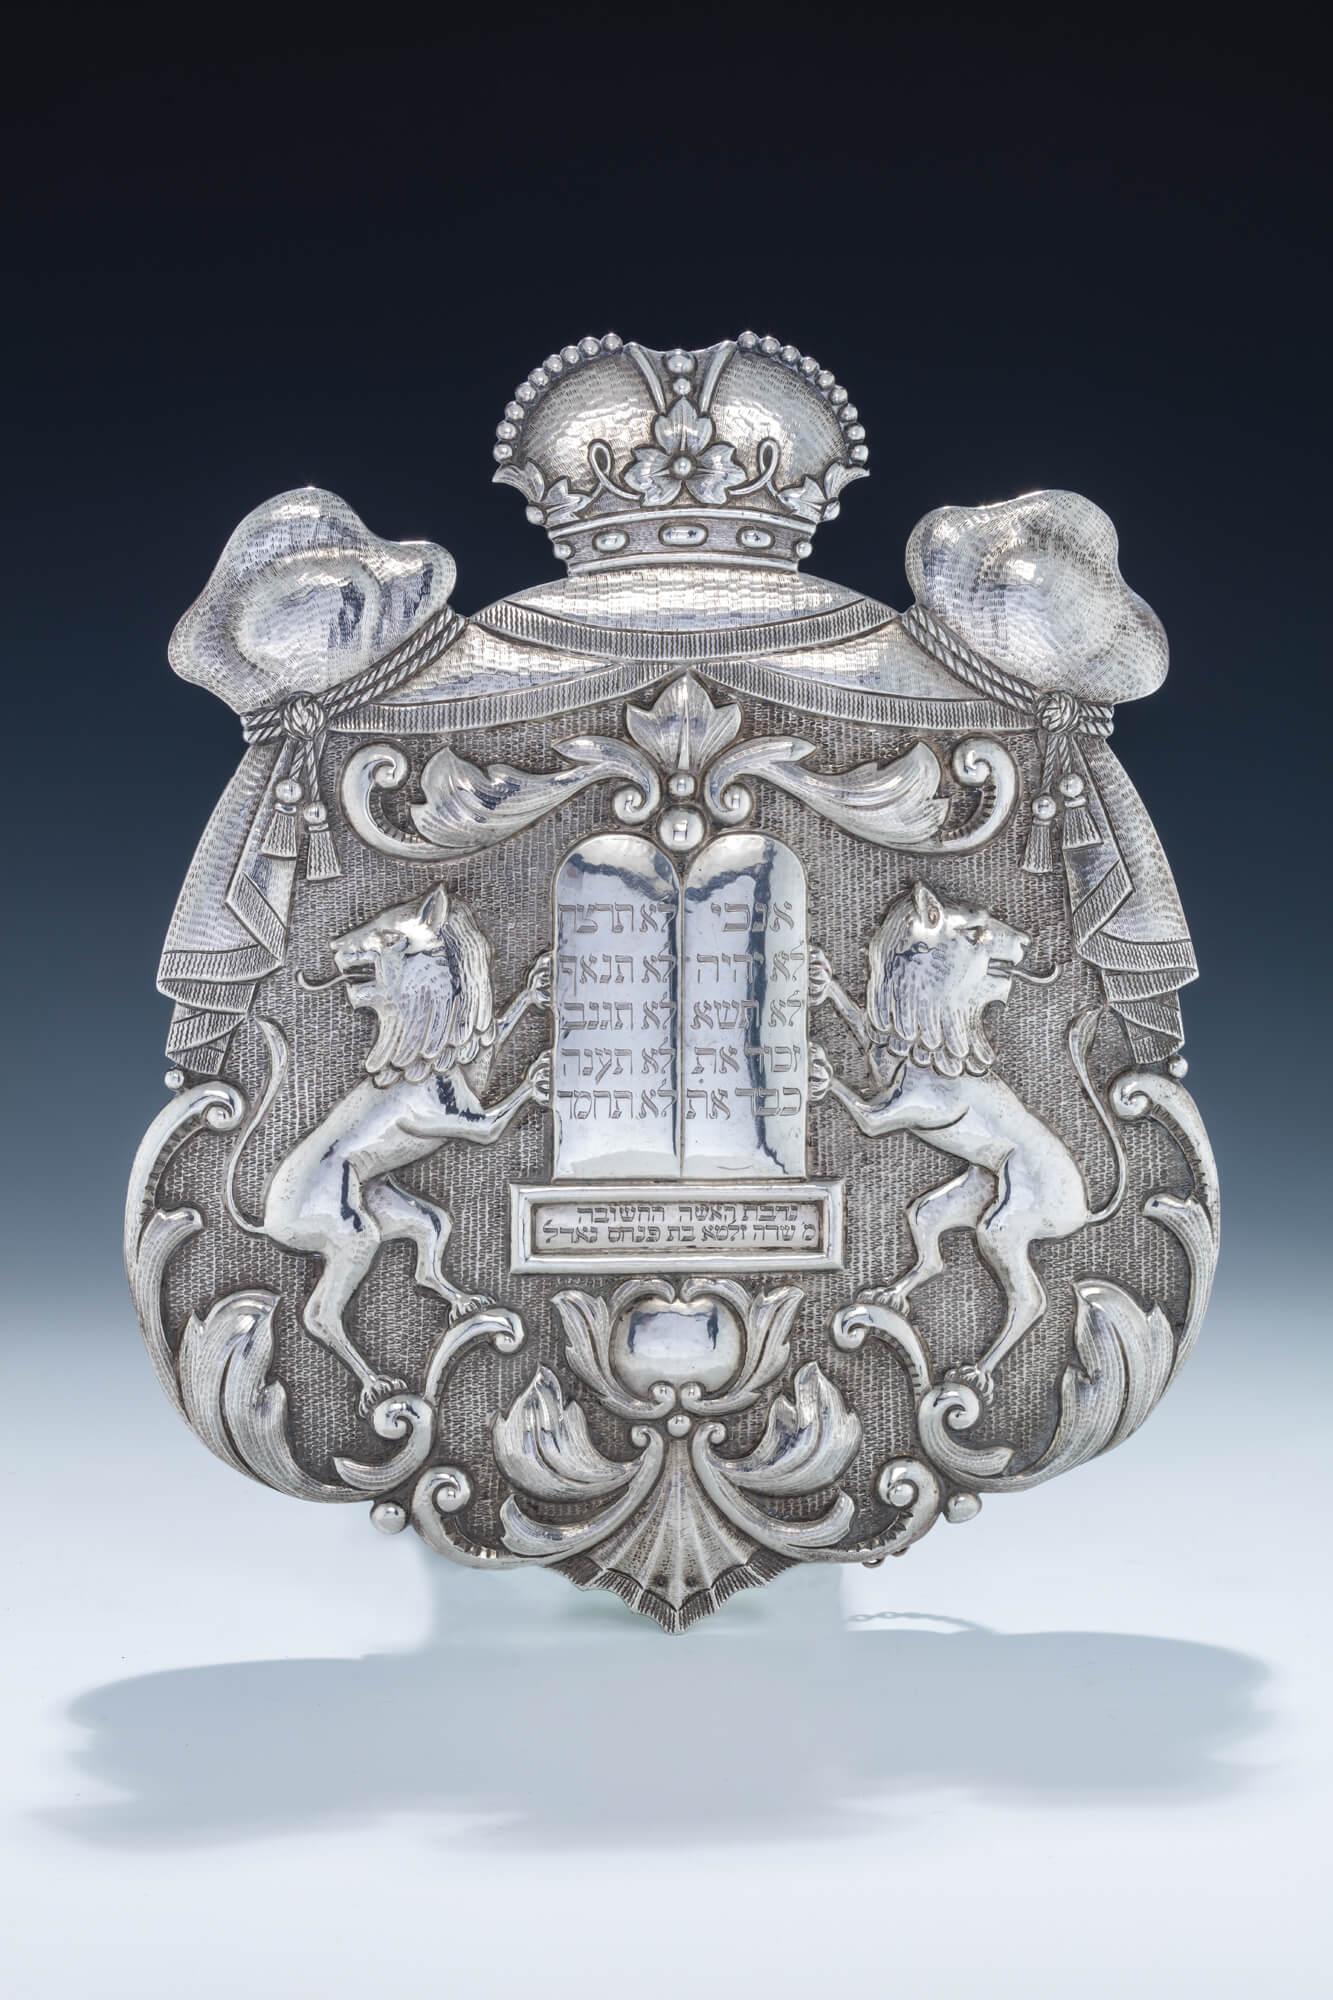 87. A Large Silver Torah Shield